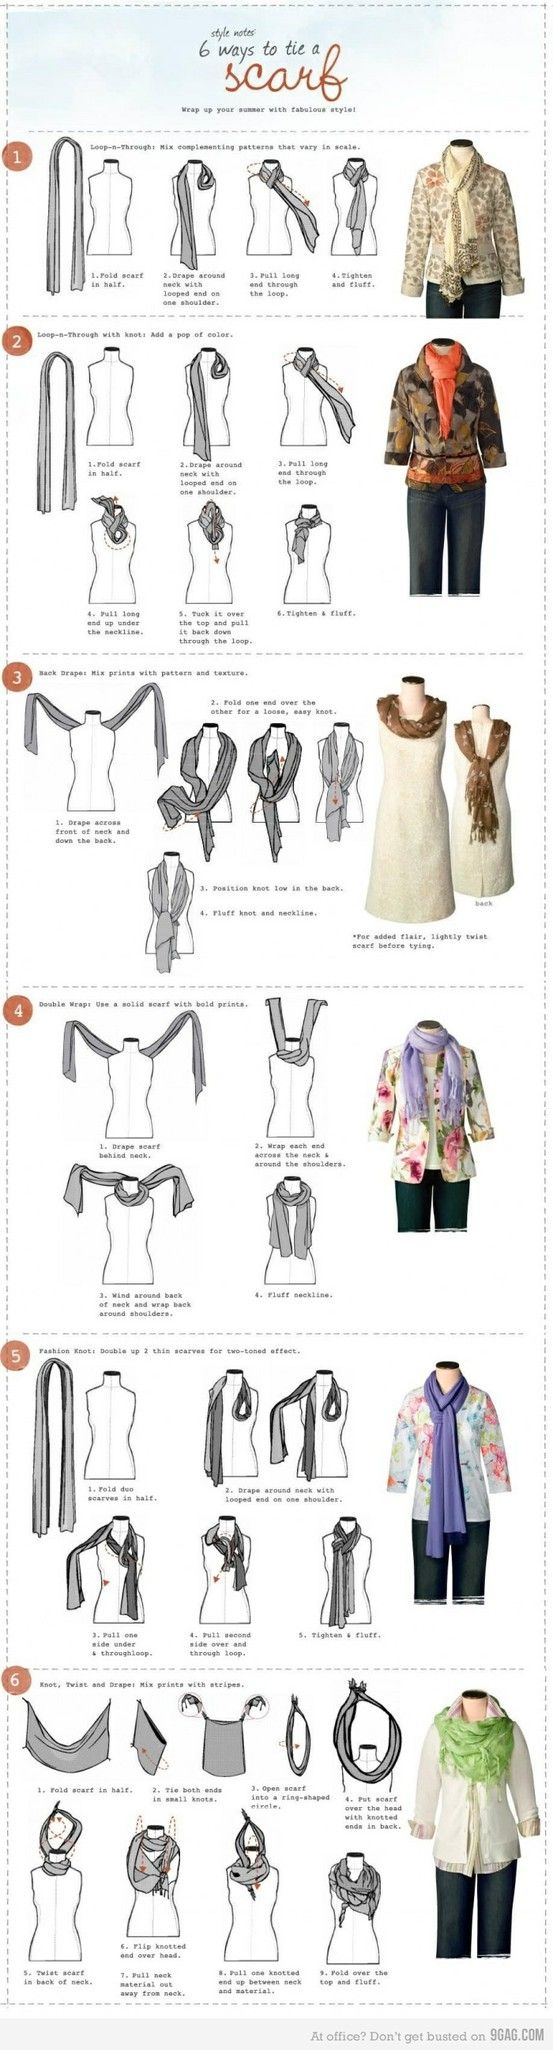 6 ways to wear a scarf: Scarf Tutorial, Scarfs Tying, Style, Wear A Scarf, Outfit, Tie Scarves, Tie A Scarf